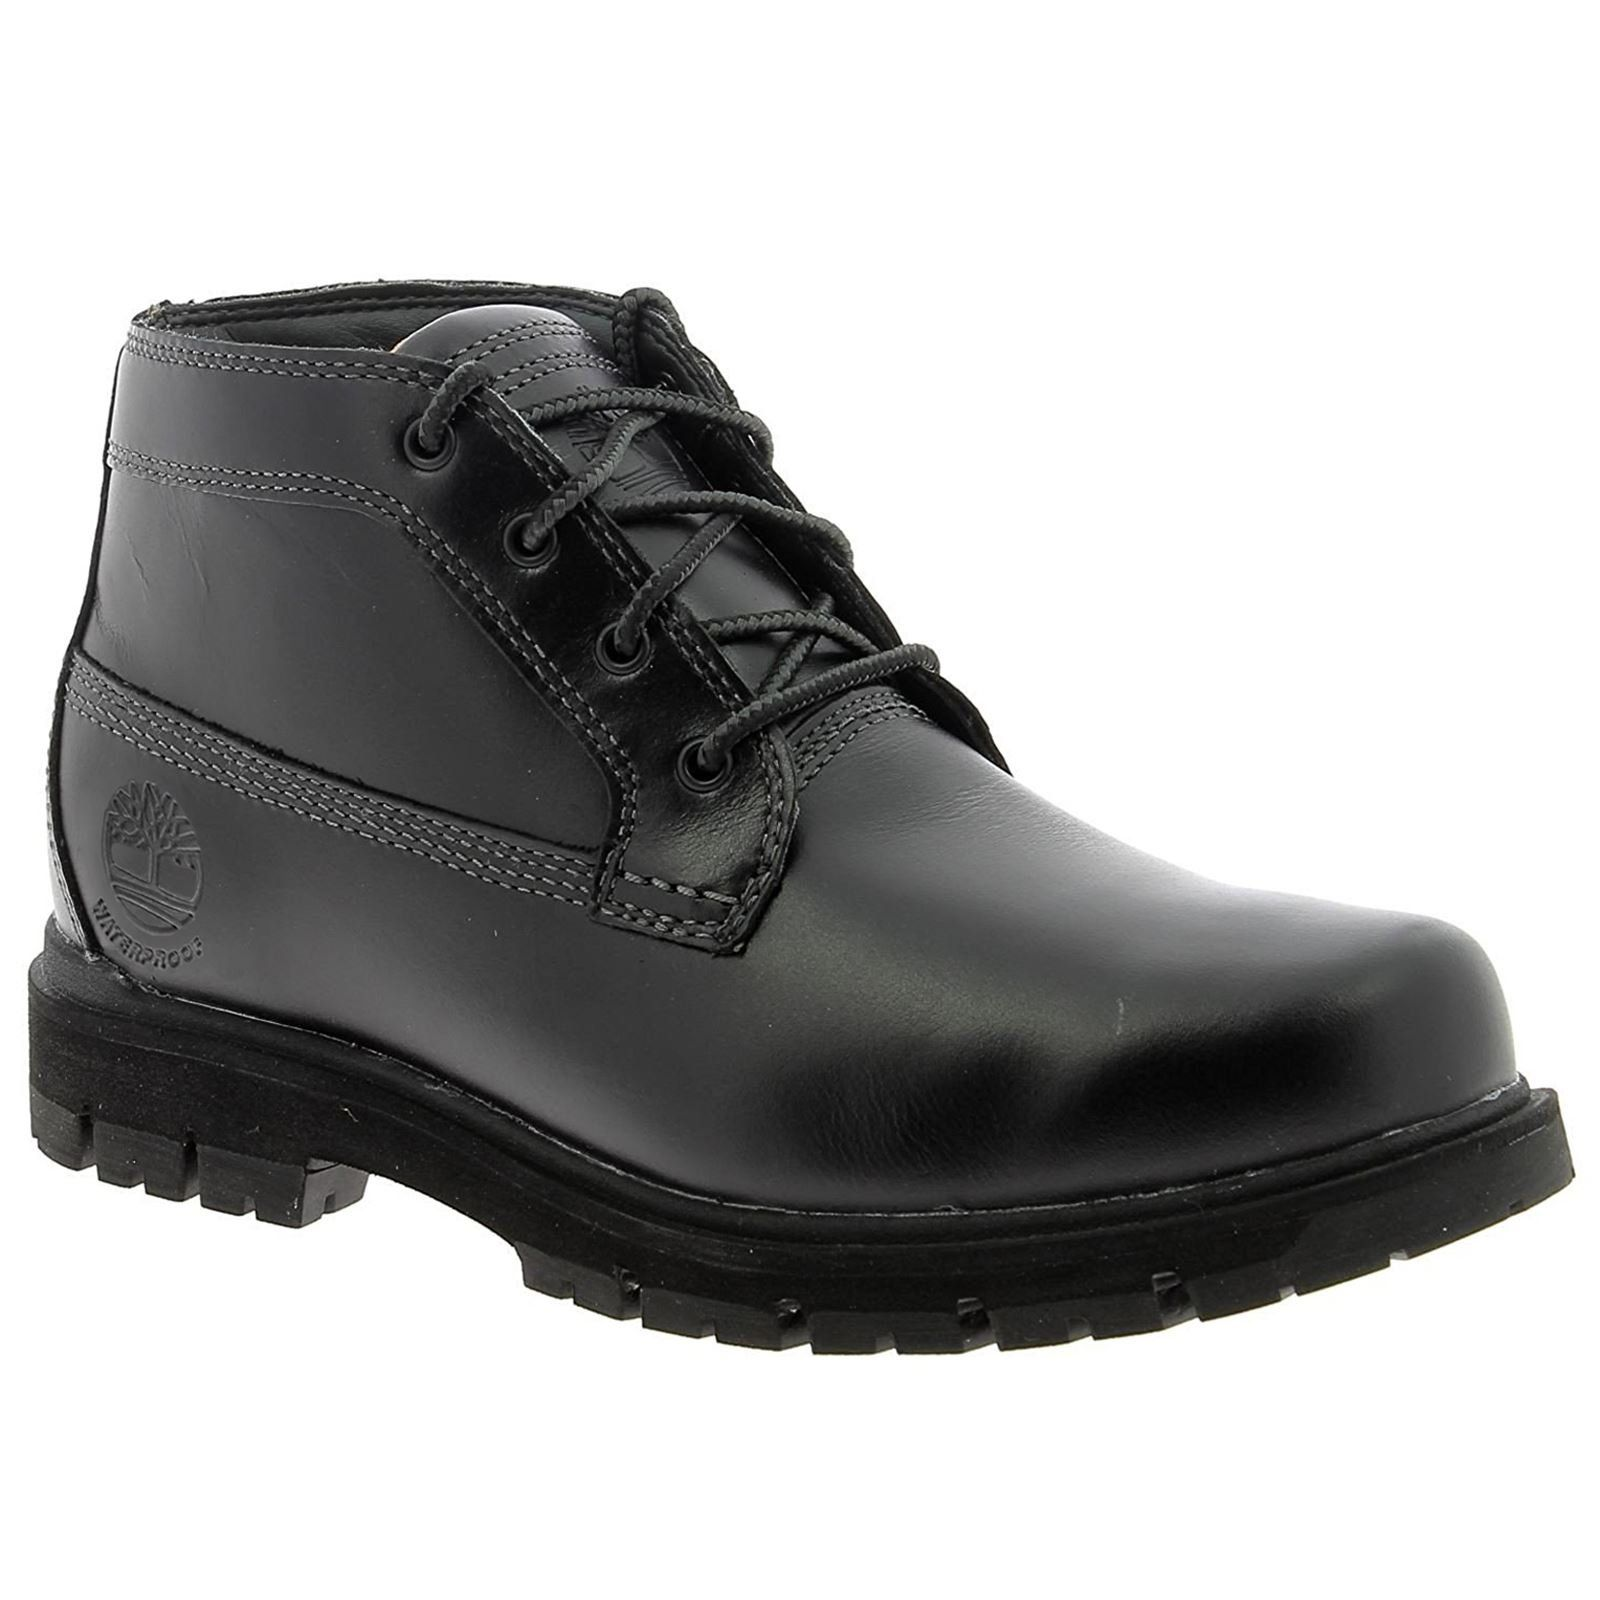 910d277b897f Timberland Mens Radford Chukka Waterproof Black Leather Boots 7.5 US --  Sincerely hope you actually love the image. (This is our affiliate link)    ...